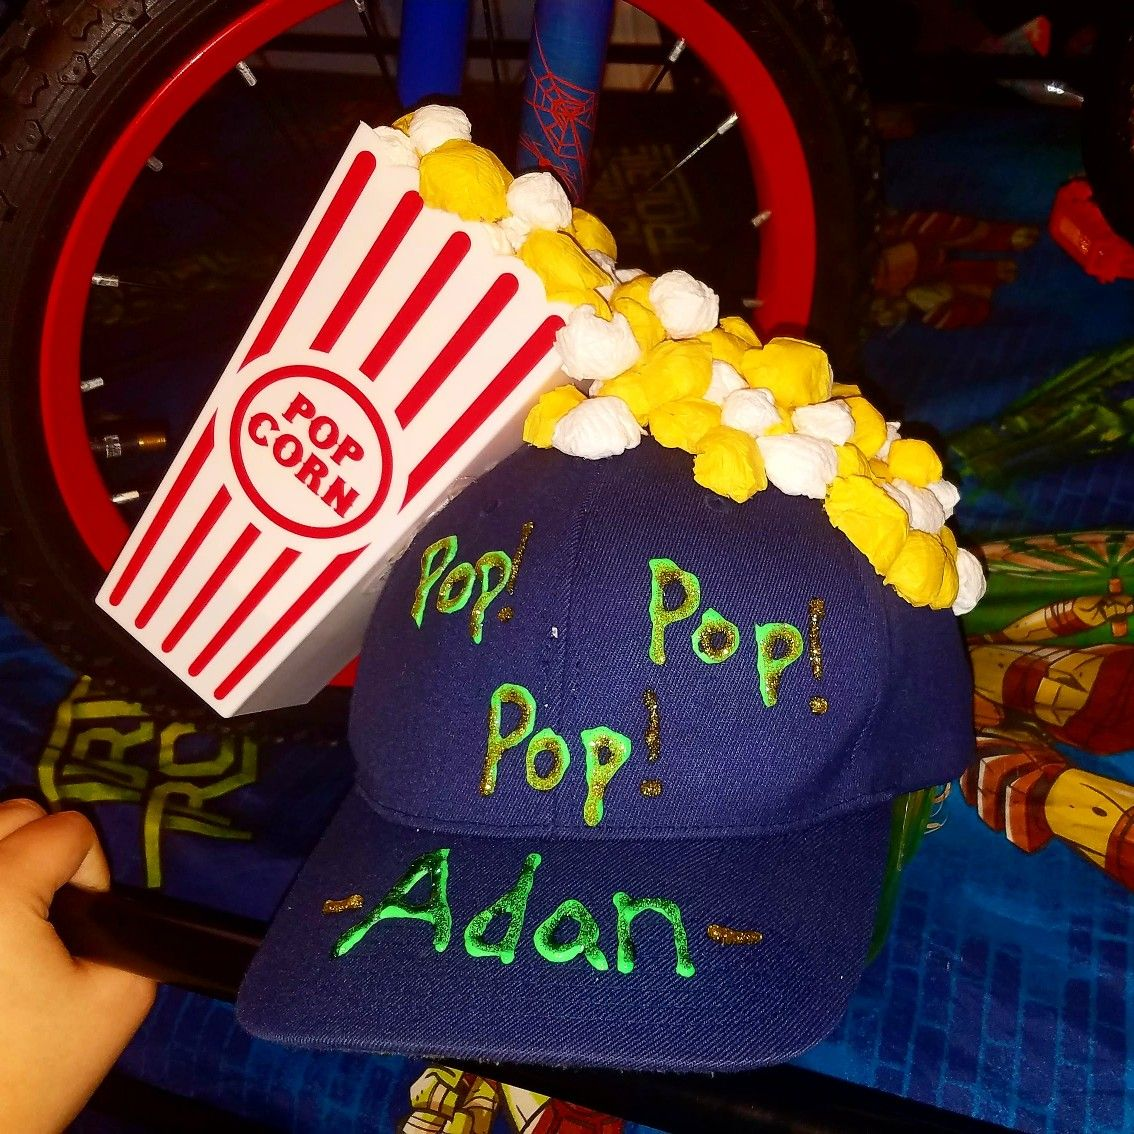 Silly Hat Day Popcorn Hat For Dr Seuss Week Silly Hat Day Silly Hat Hat Day